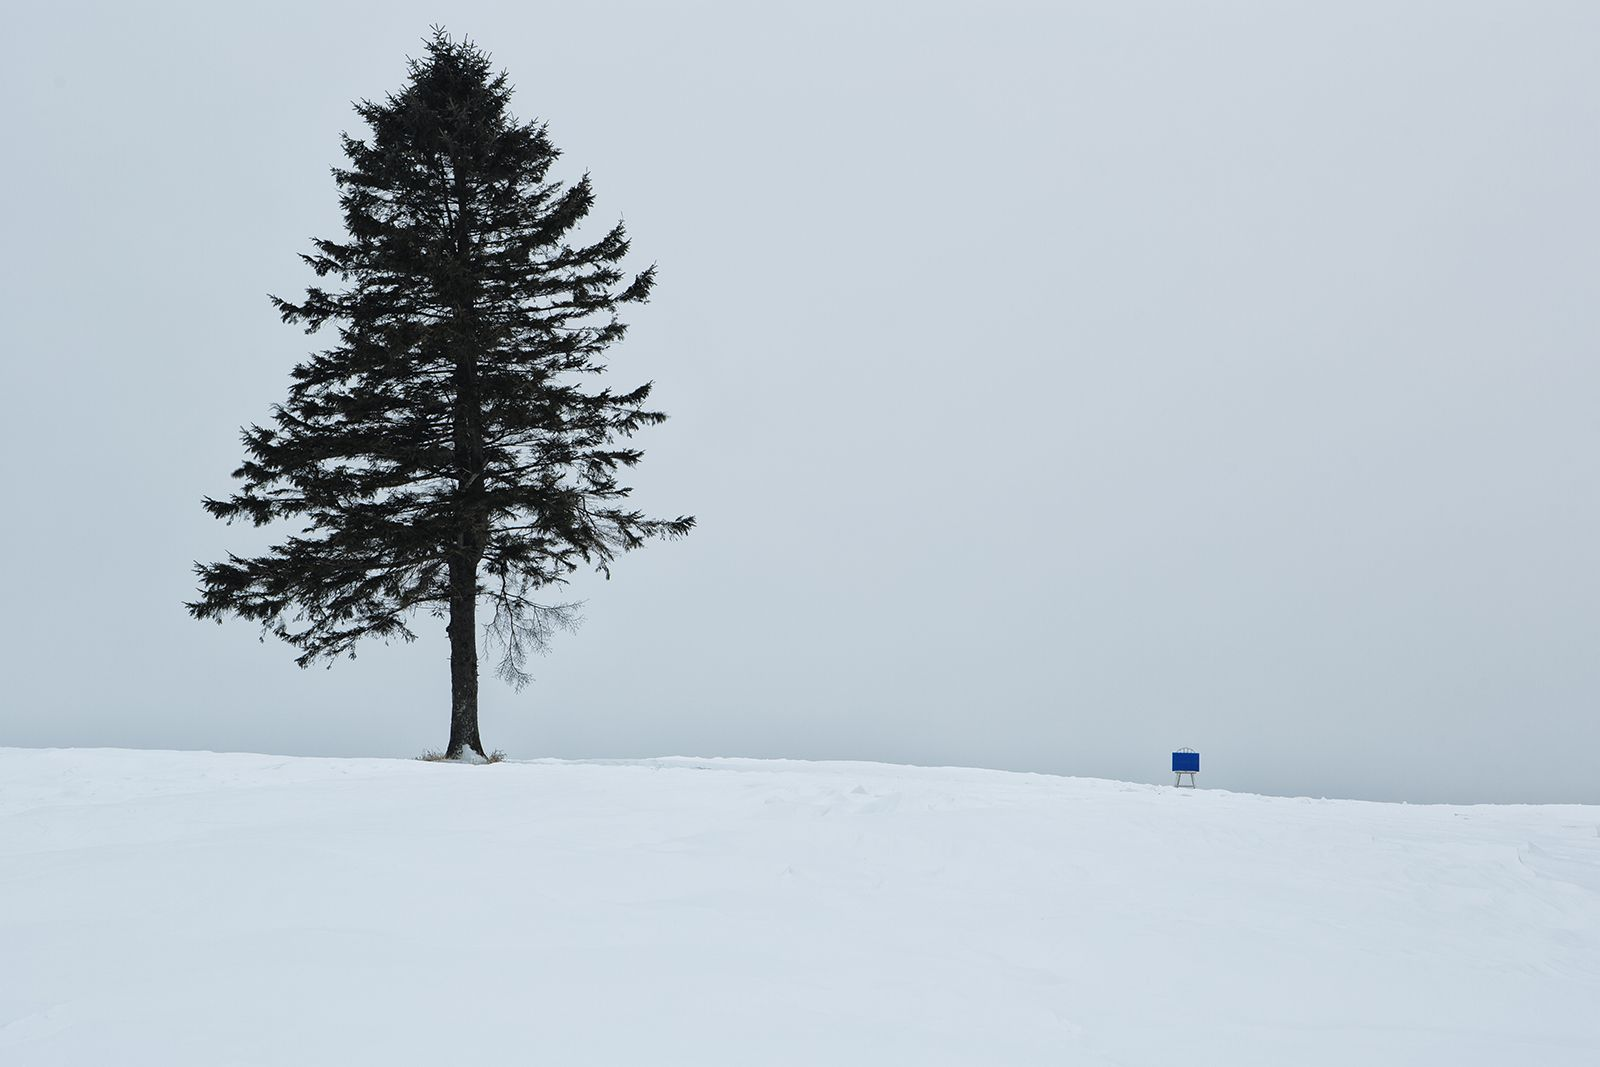 靑靑(Blues) #01, 116x77cm, Pigment print mounted on flexiglas #2013 #LobinKim #PhotoArtist #chair #works #art #photo #pine #pinetree #snow #blue